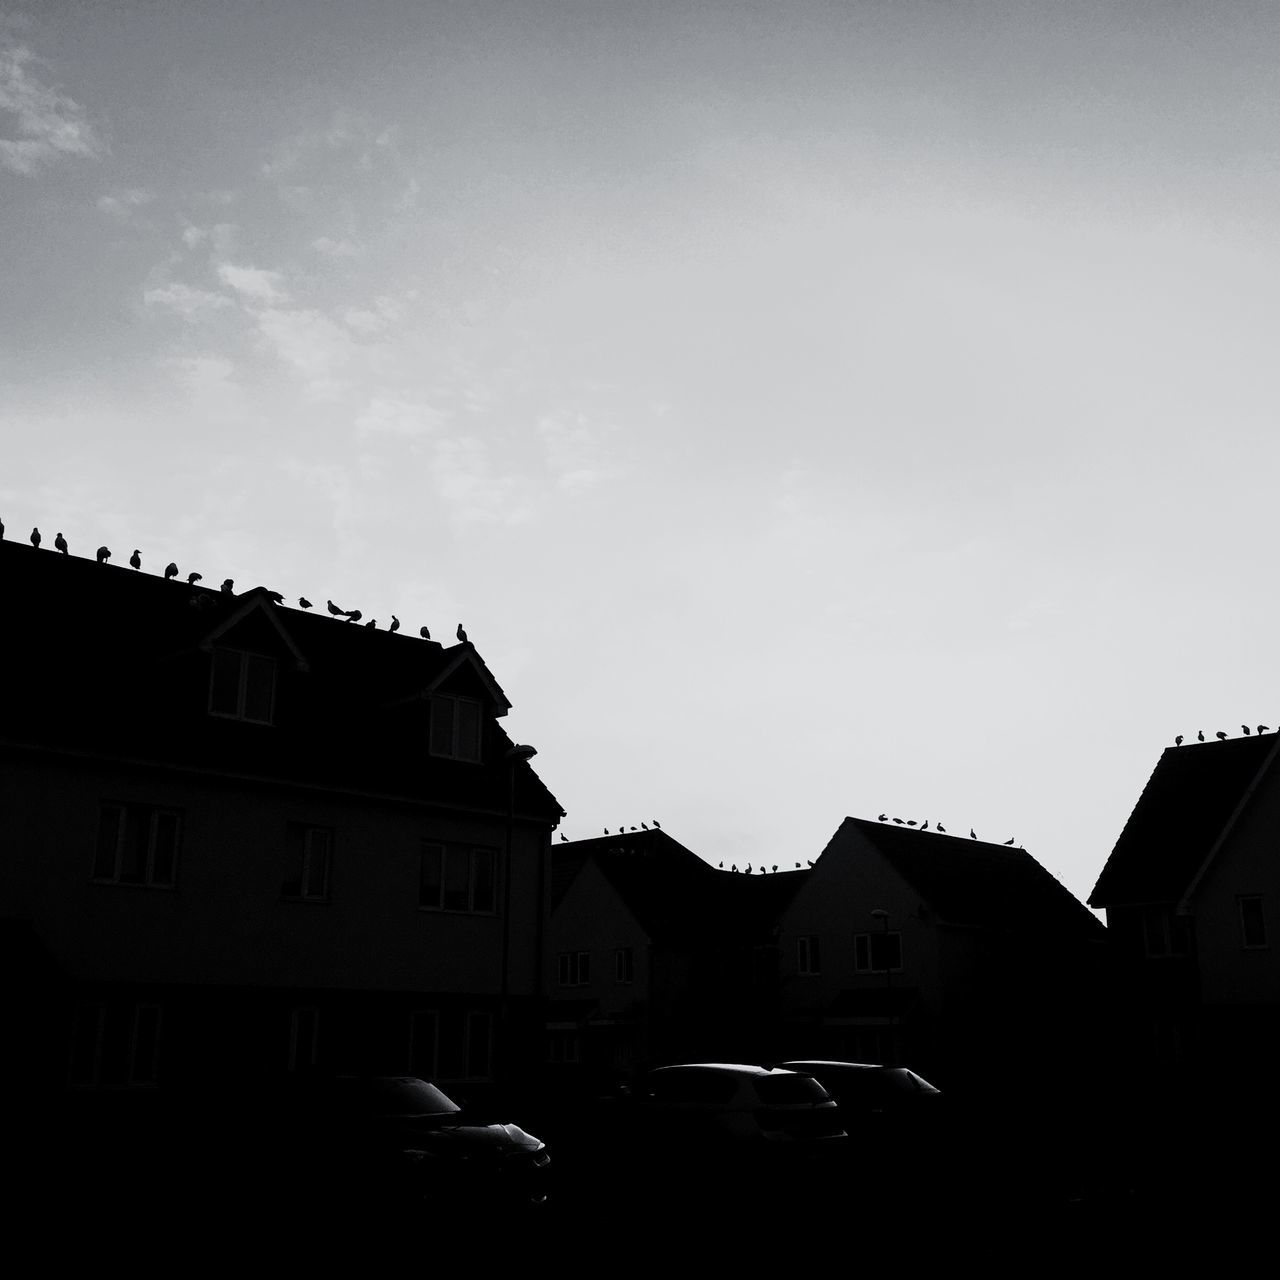 Building Exterior Architecture Built Structure Residential Building House Sky City No People Low Angle View Outdoors Exterior Day Residential  Suburban Sky Suburban Cars Balck And White Birds Birds On The Roof